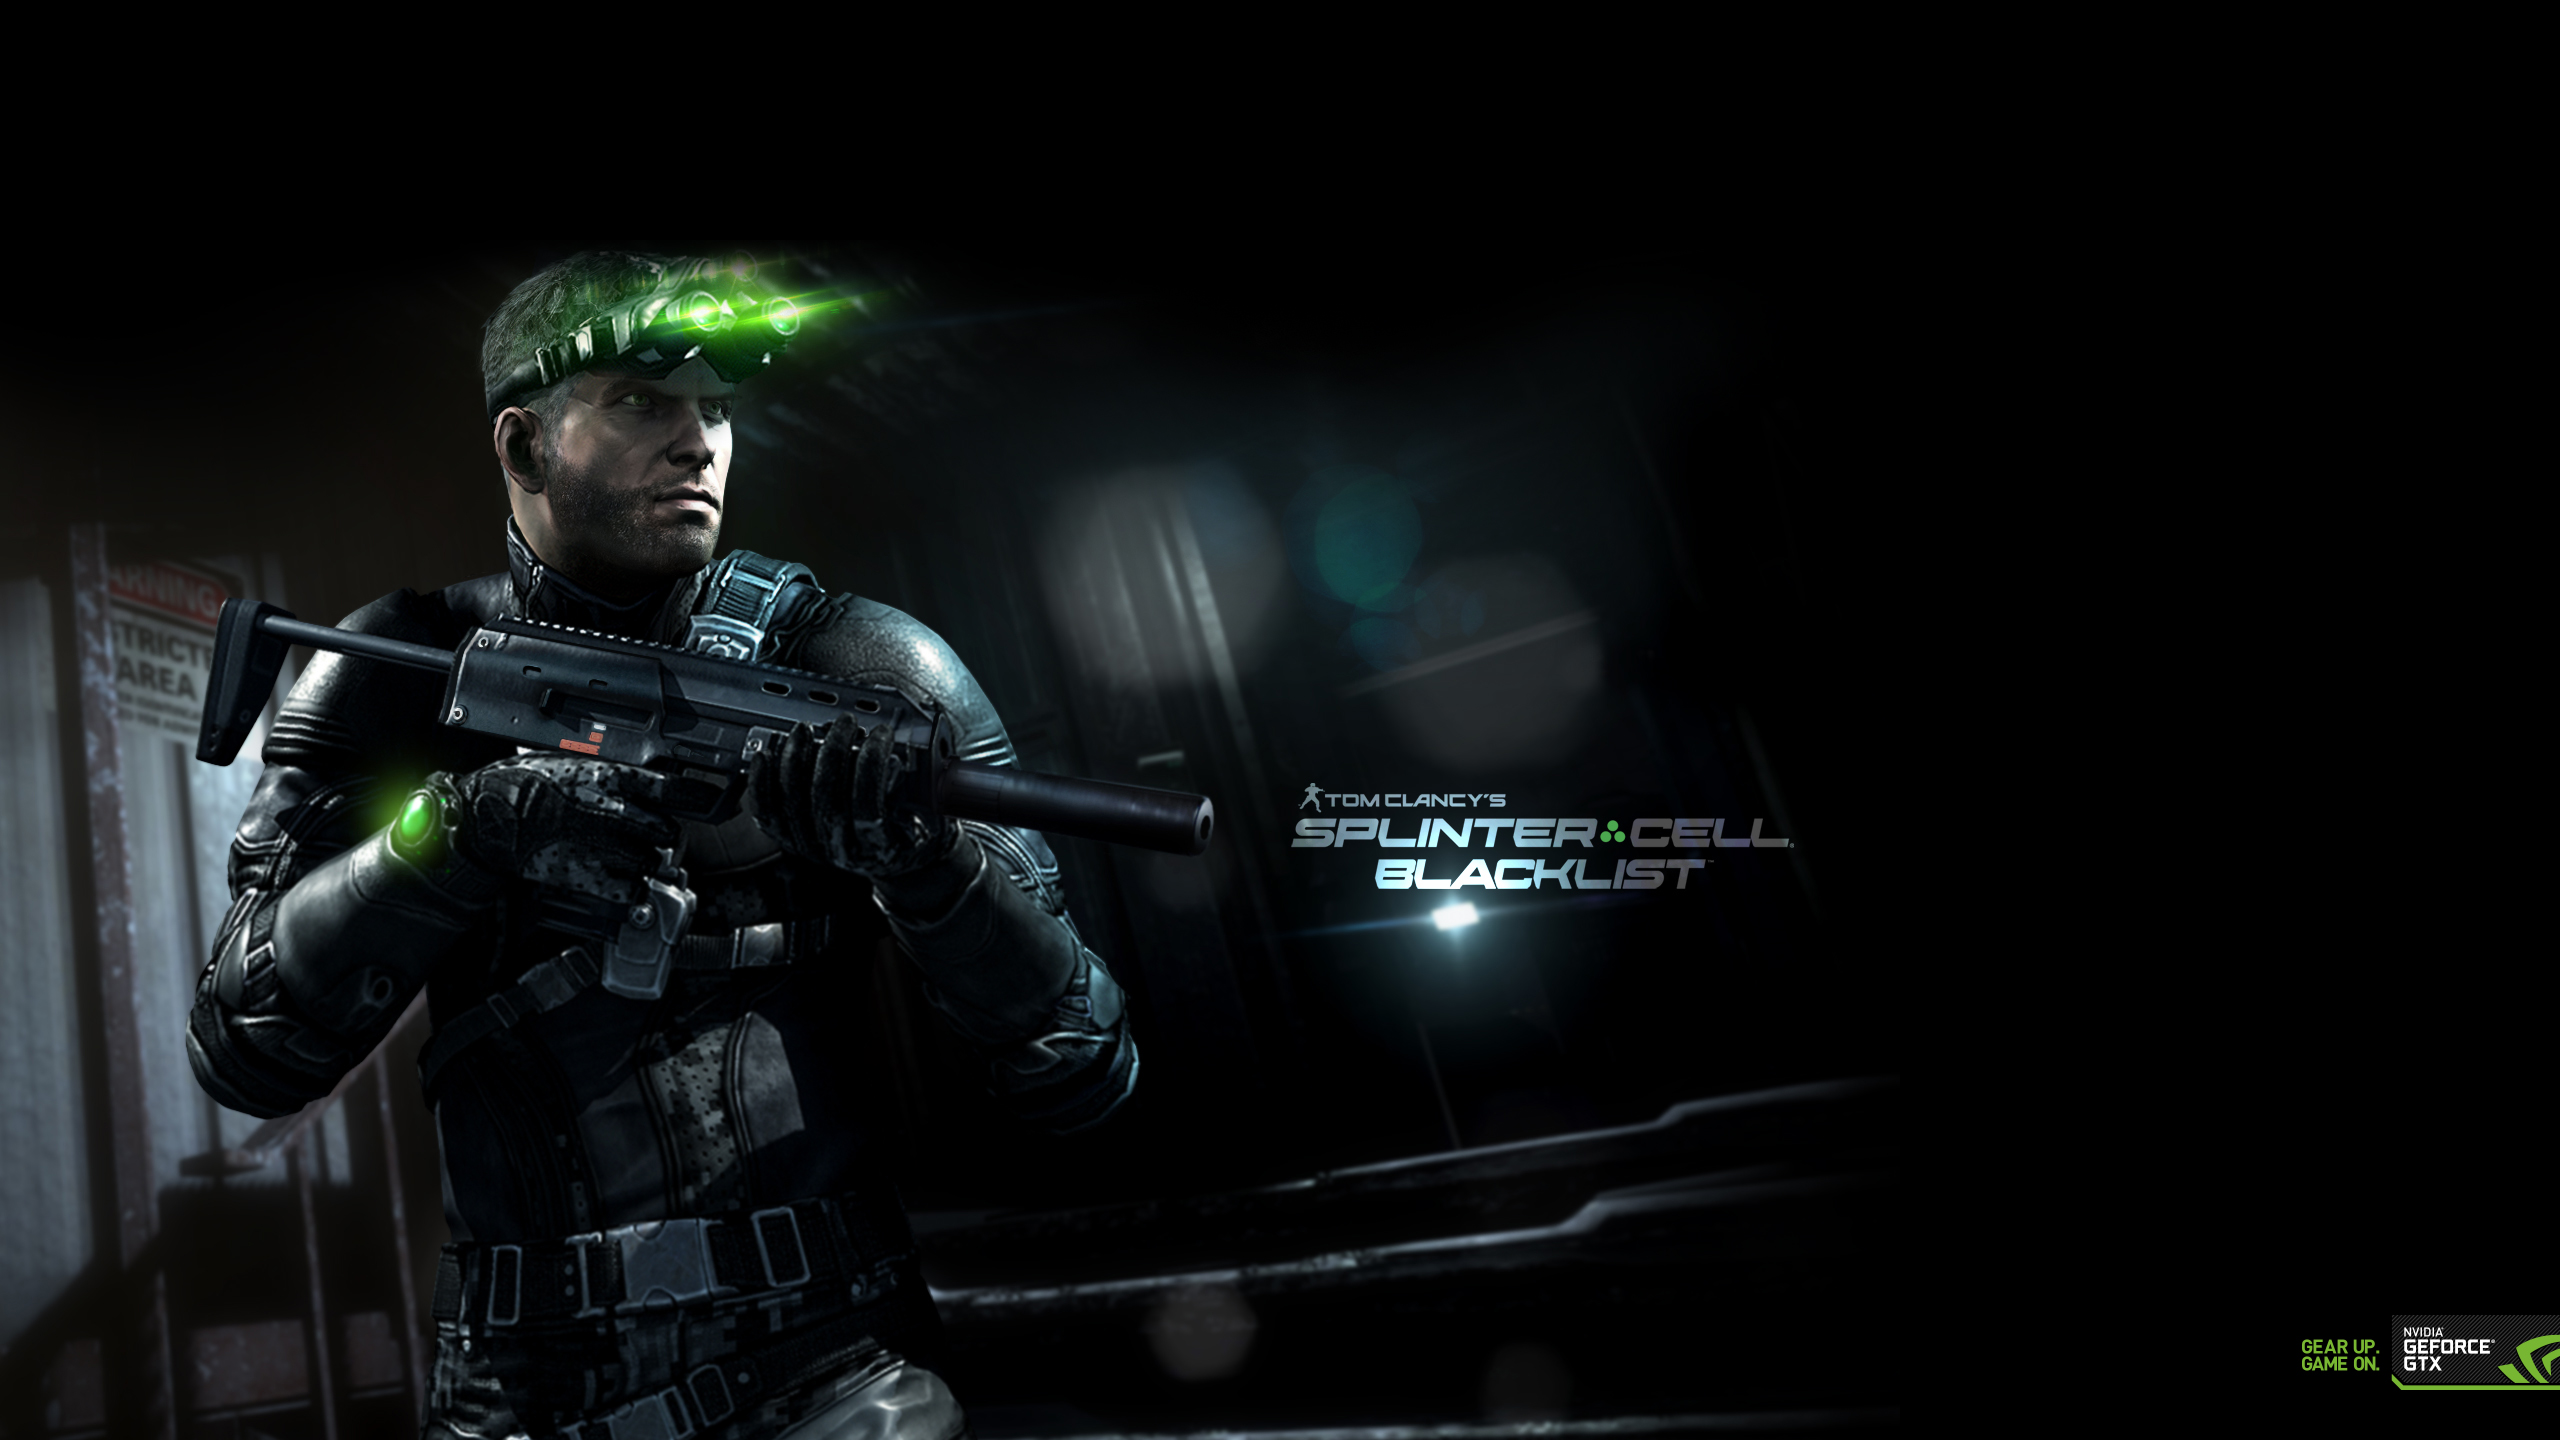 Tom Clancy S Splinter Cell Blacklist Hd Wallpaper